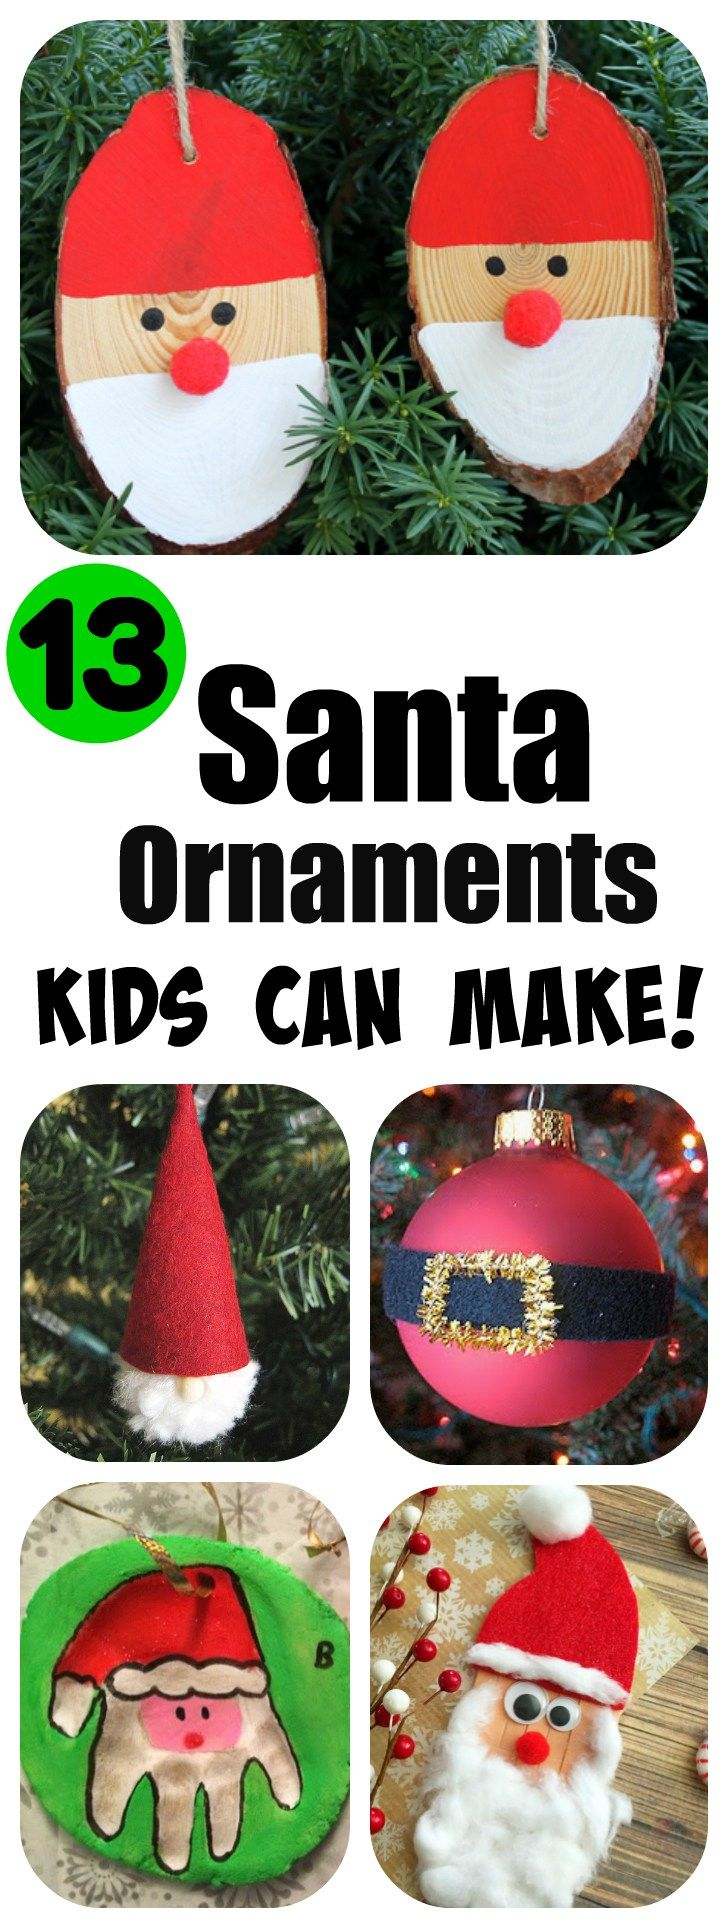 Ideas For Christmas Crafts To Make Part - 37: 1290 Best *~Christmas Crafts Kids Can Make!~* Images On Pinterest | Christmas  Crafts, Christmas Ideas And Merry Christmas